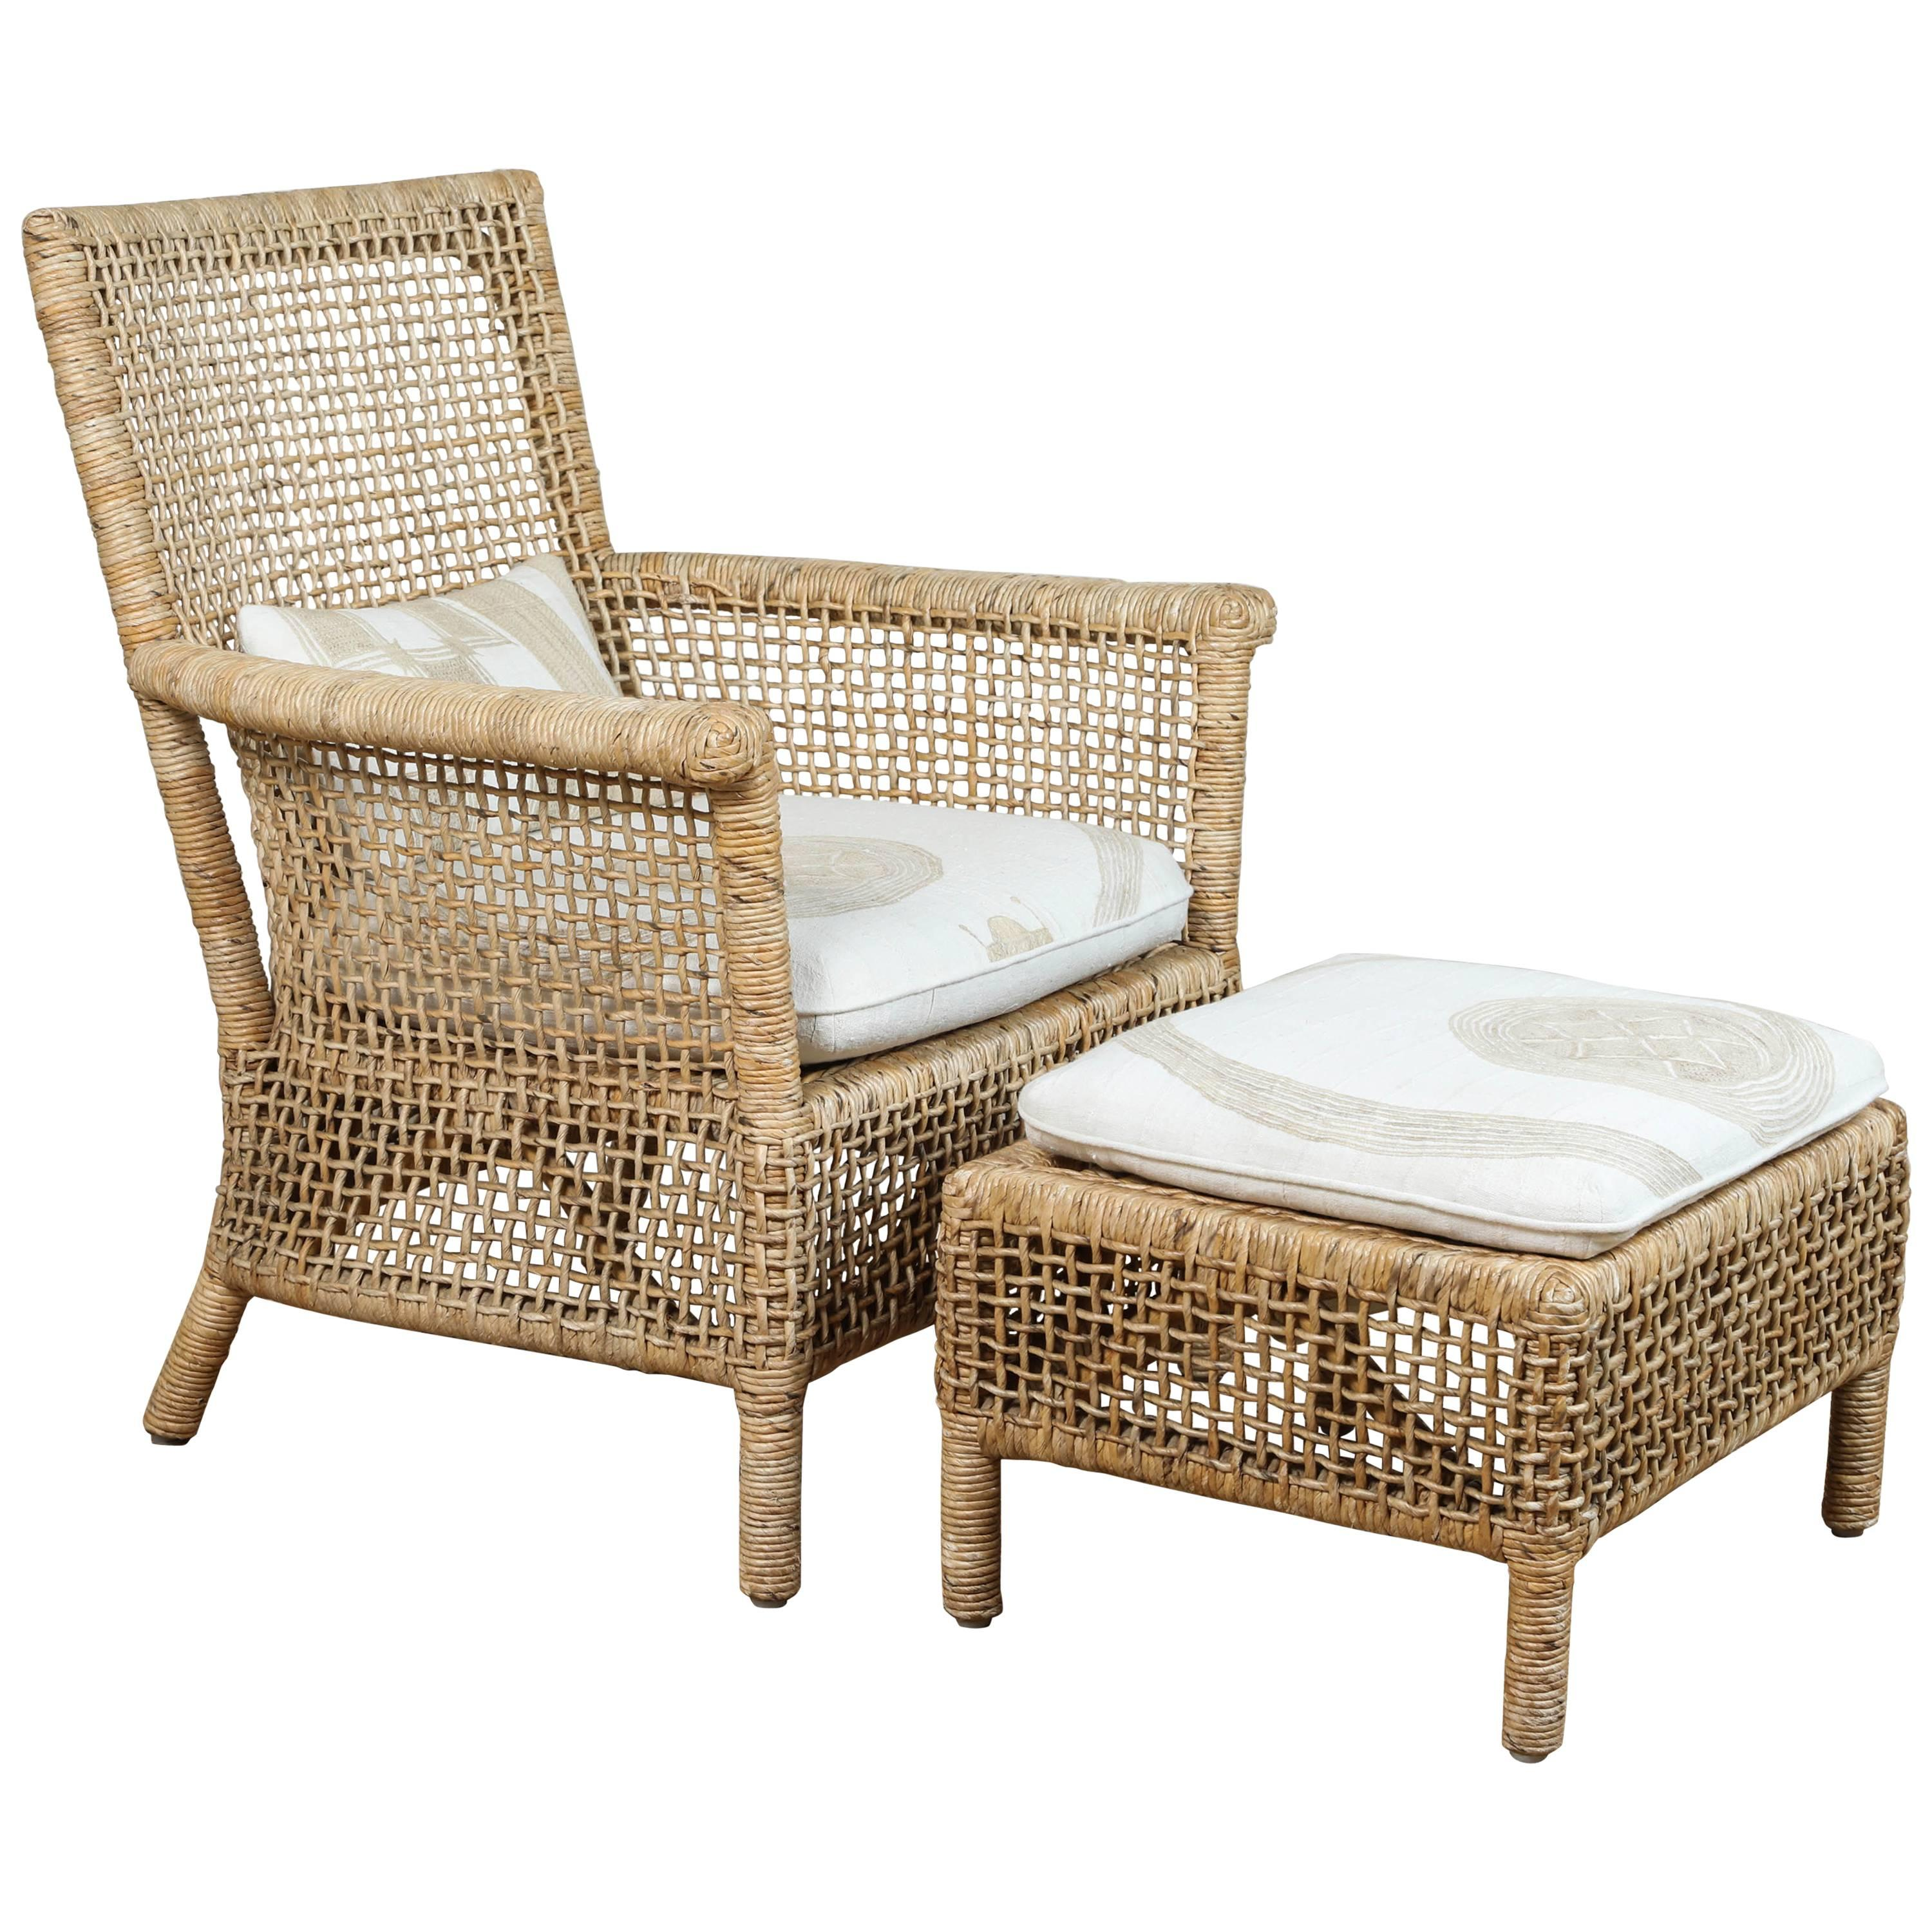 Rattan Chair And Ottoman With African Textile Cushions